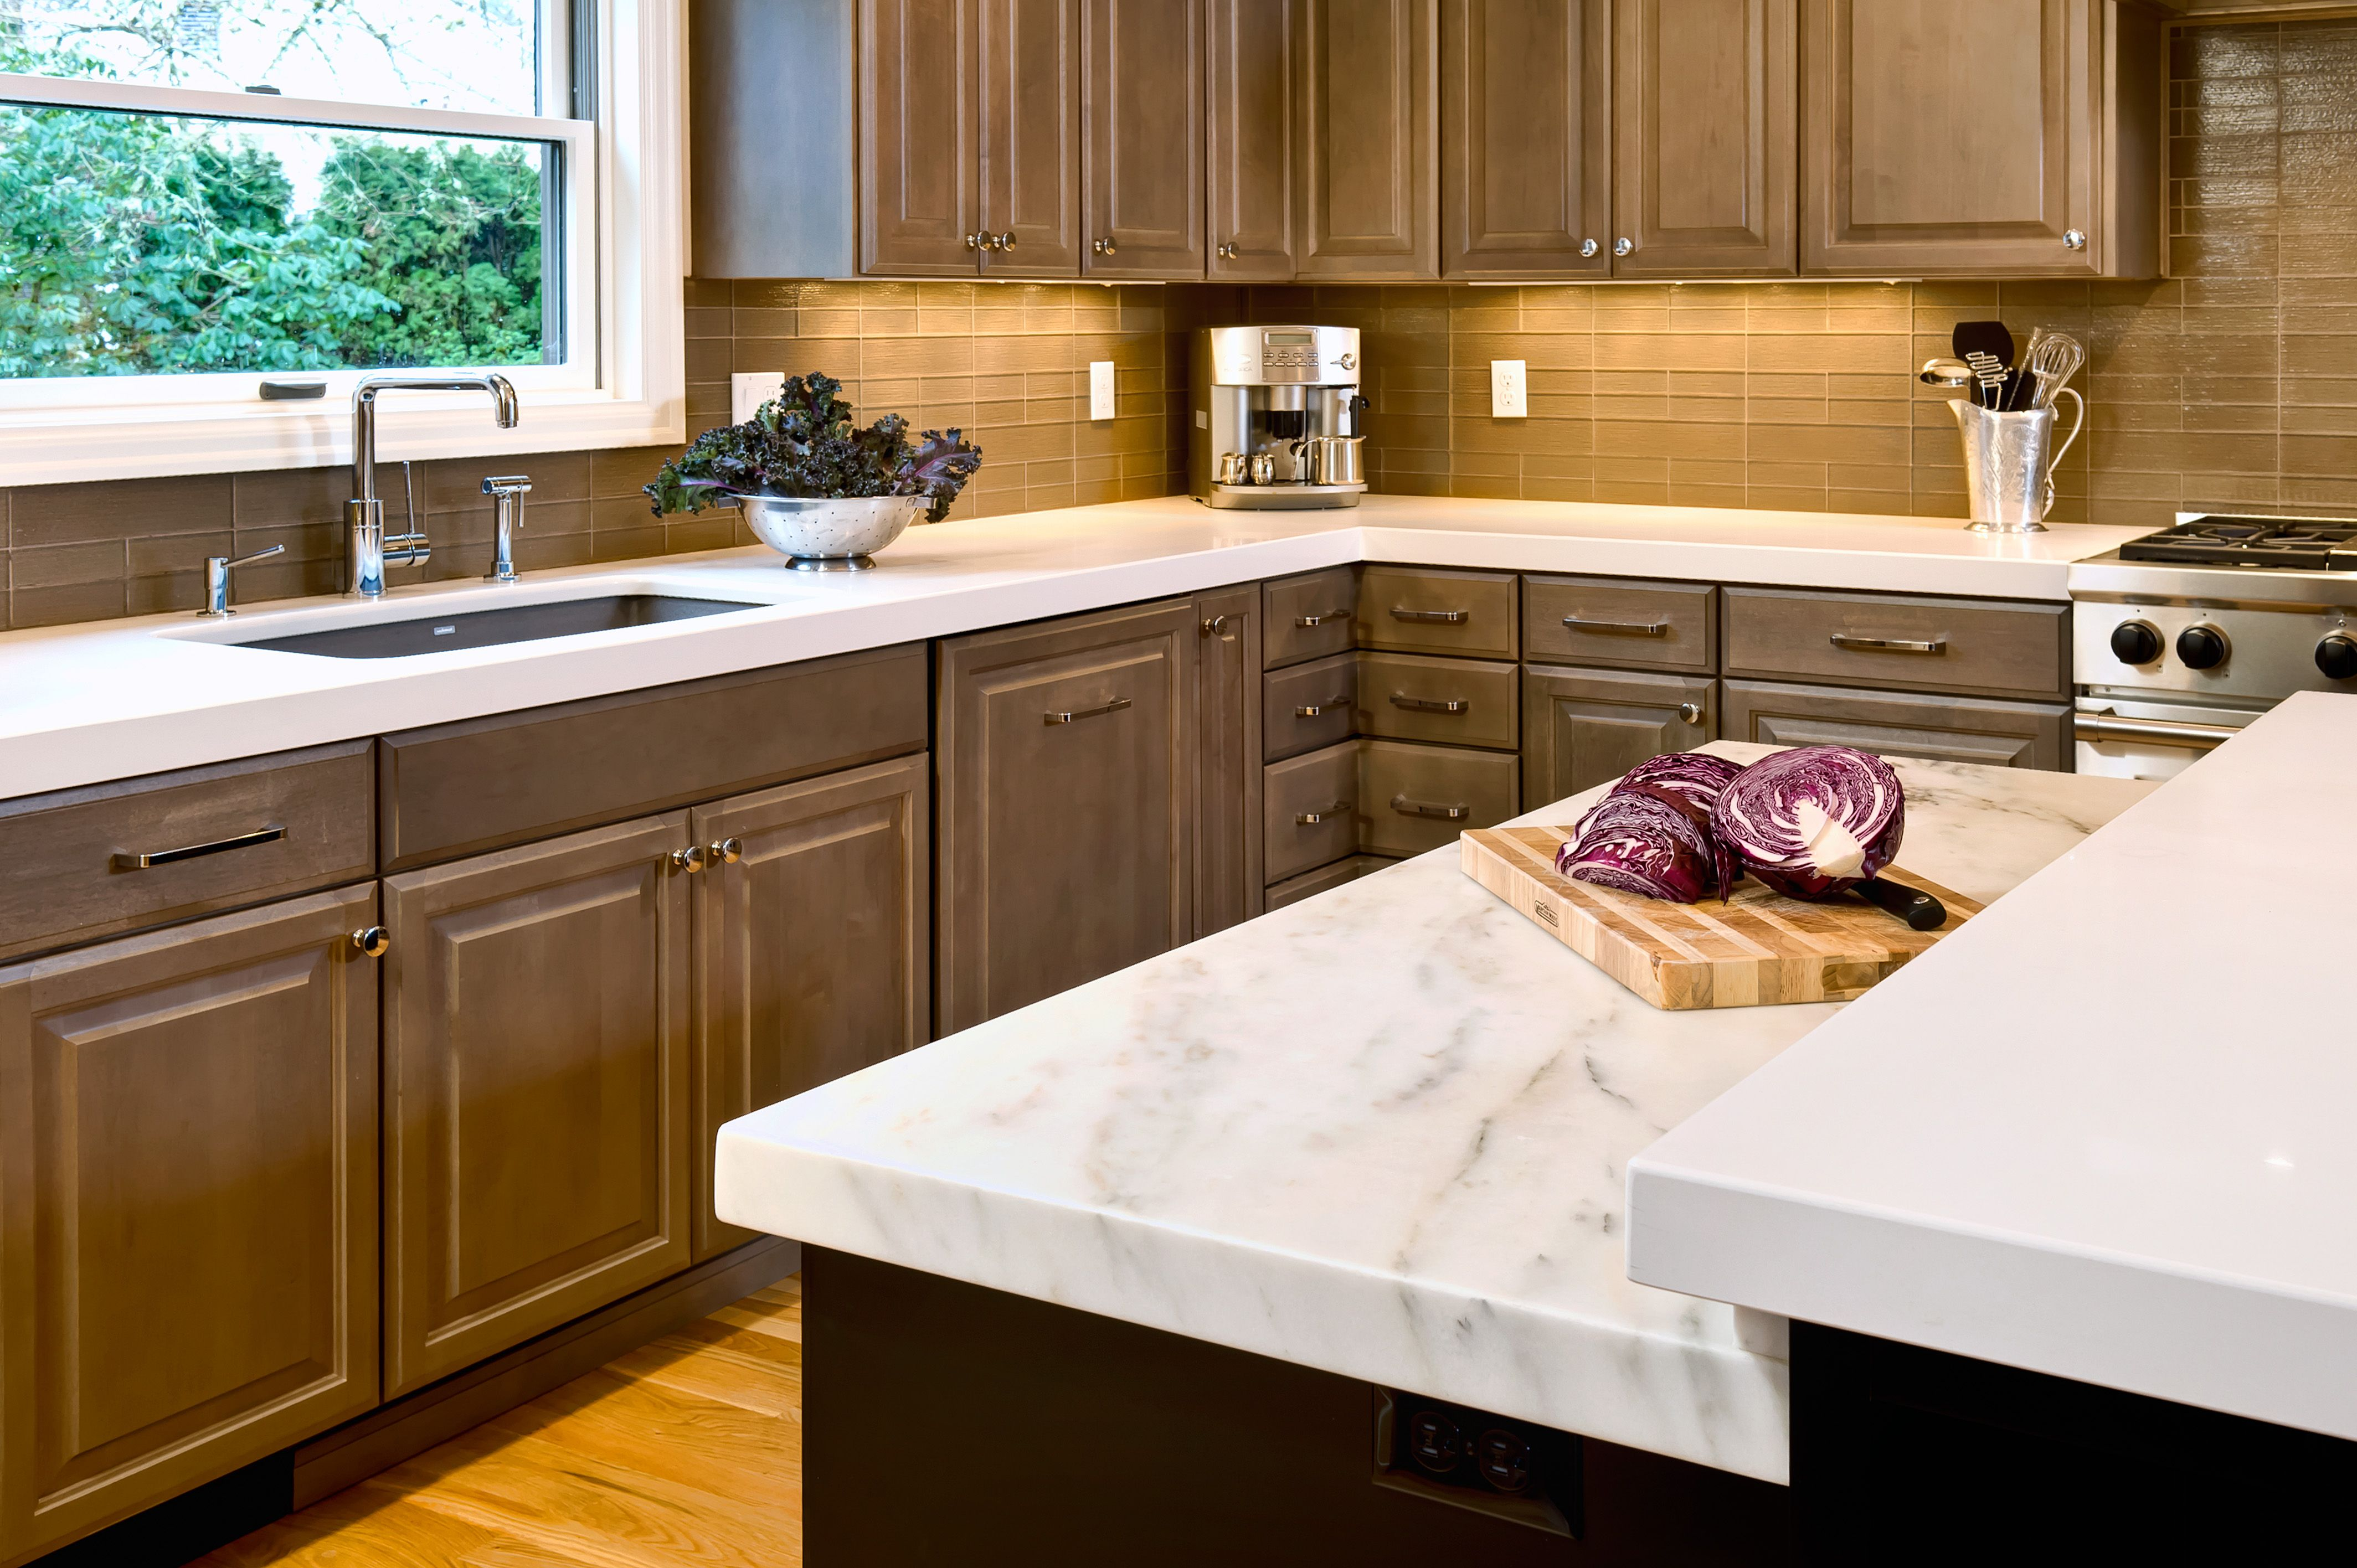 Kitchen i designed caesarstone counters marble for Silgranit countertops